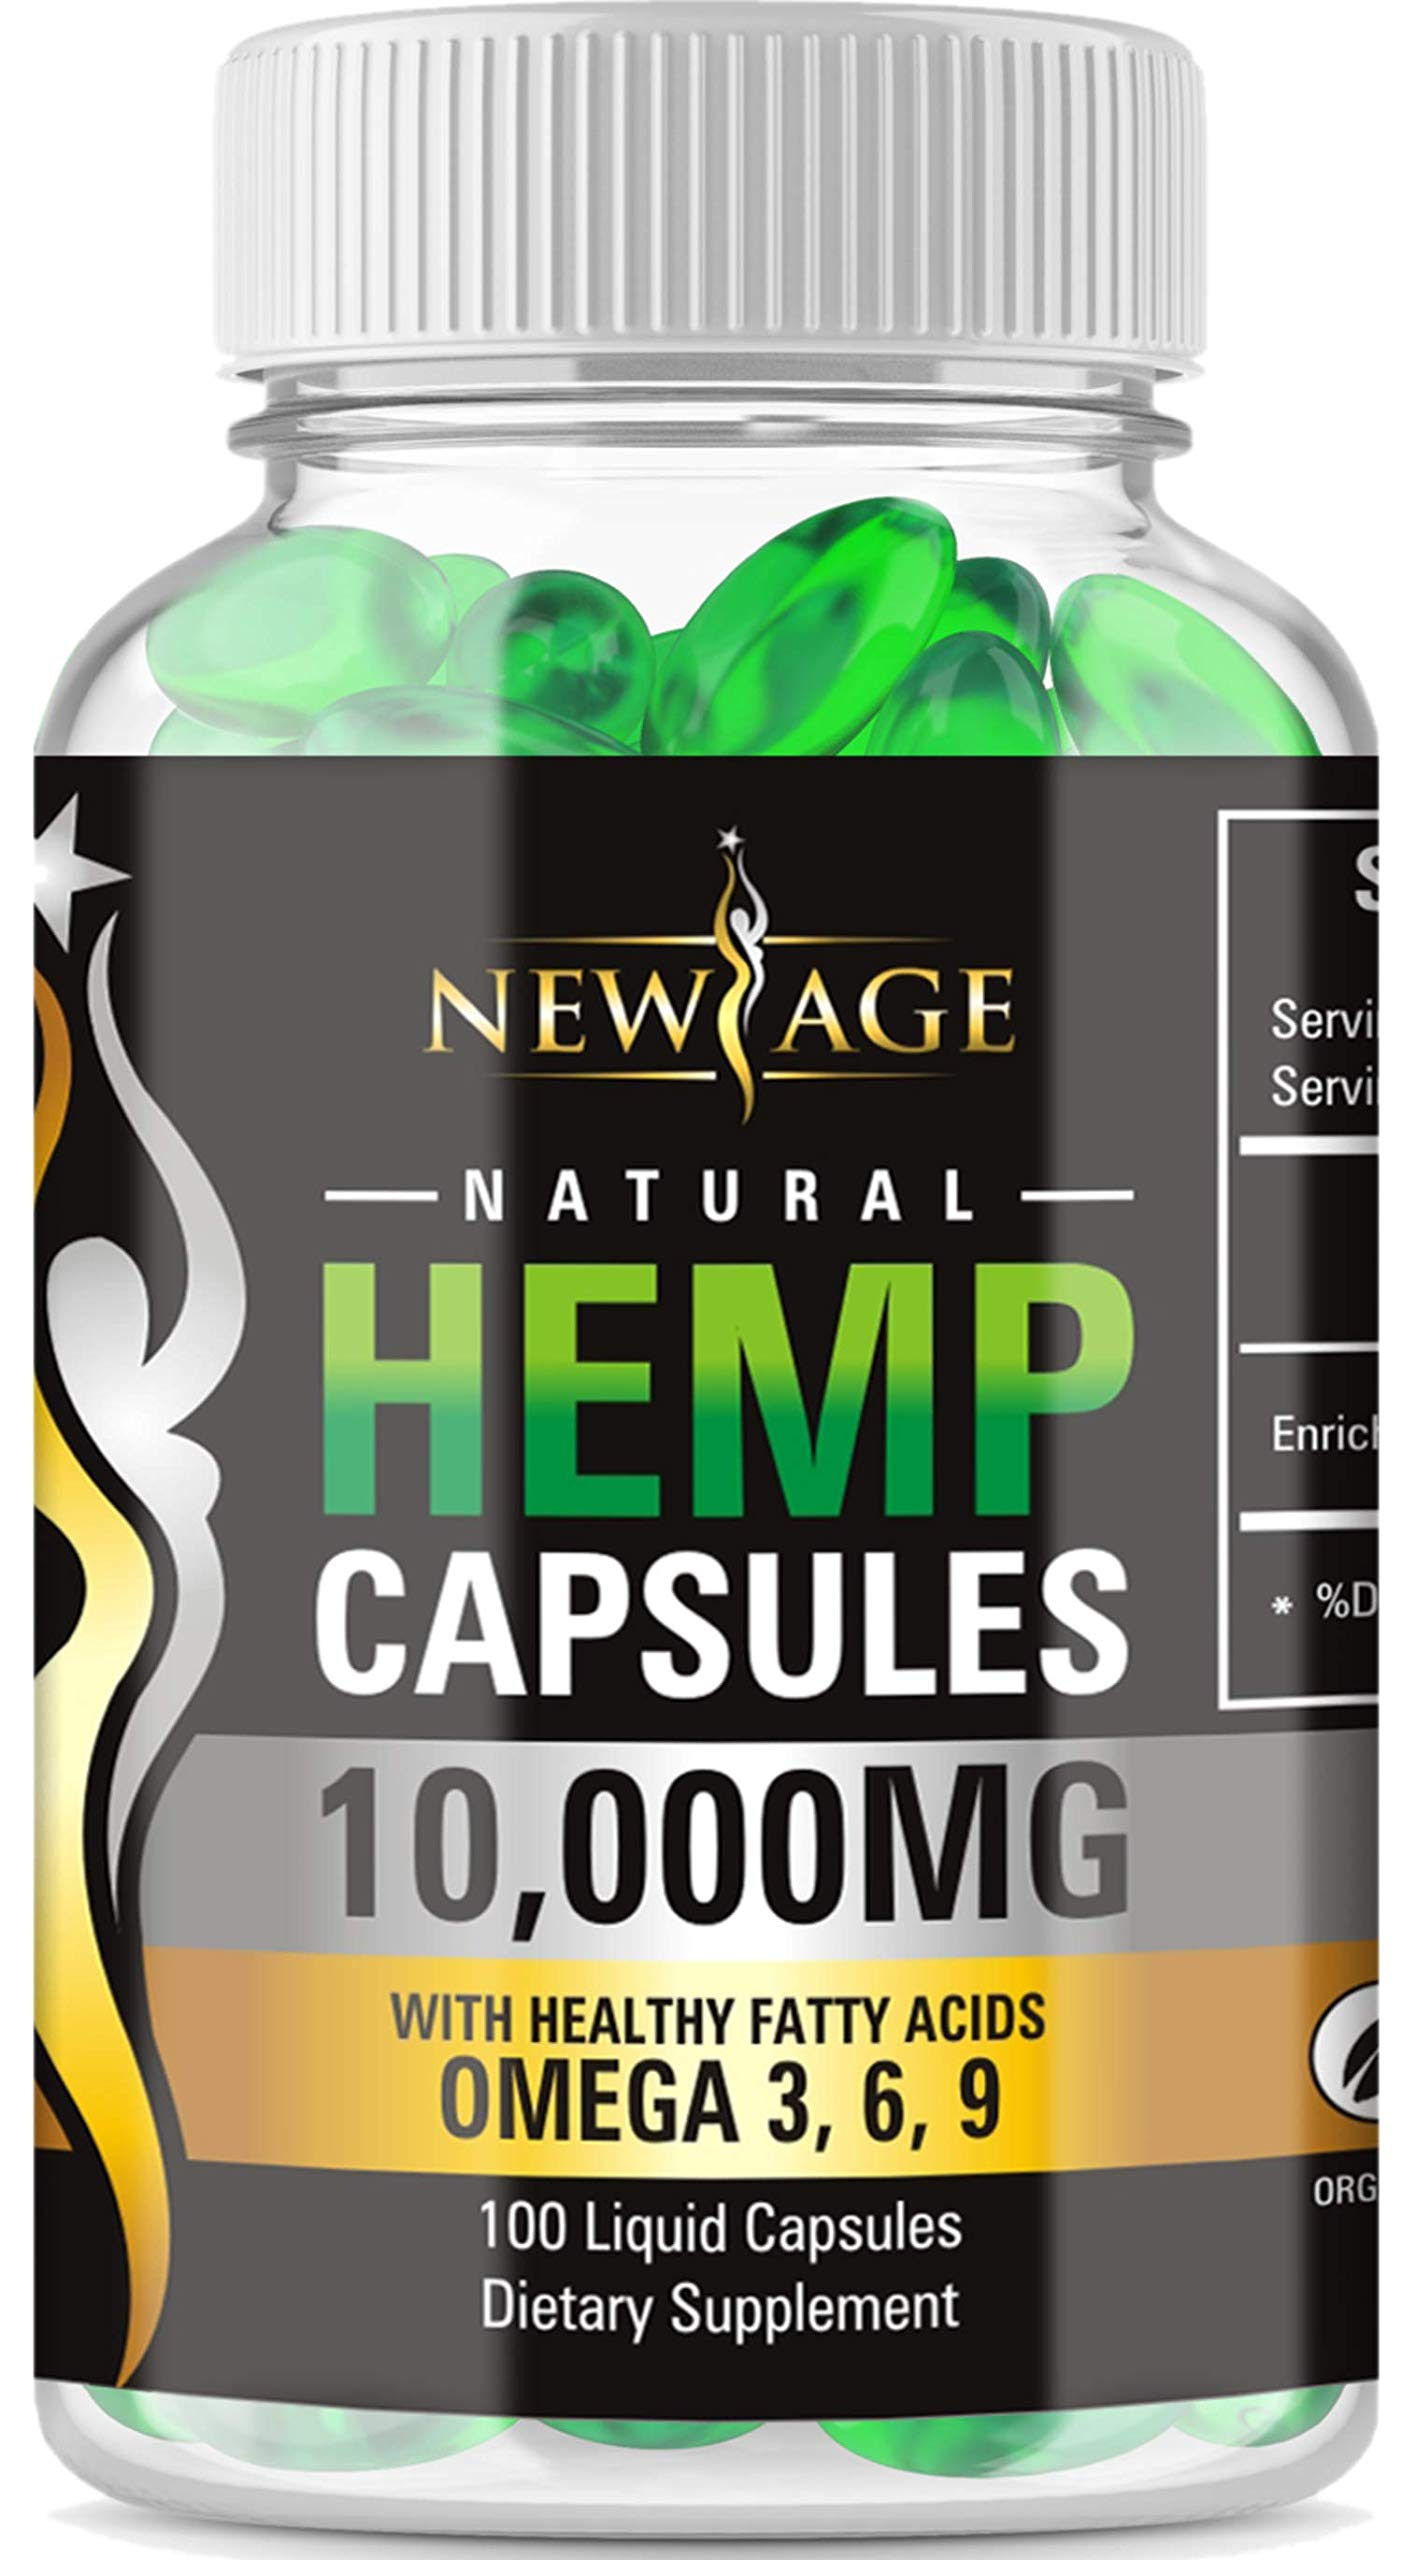 Hemp Capsules - 10,000 MG of Pure Hemp Extract Per Bottle - Pain, Stress & Anxiety Relief - Natural Sleep & Mood Support - Made in The USA - Maximum Value - Rich in Omega 3,6,& 9, by New Age